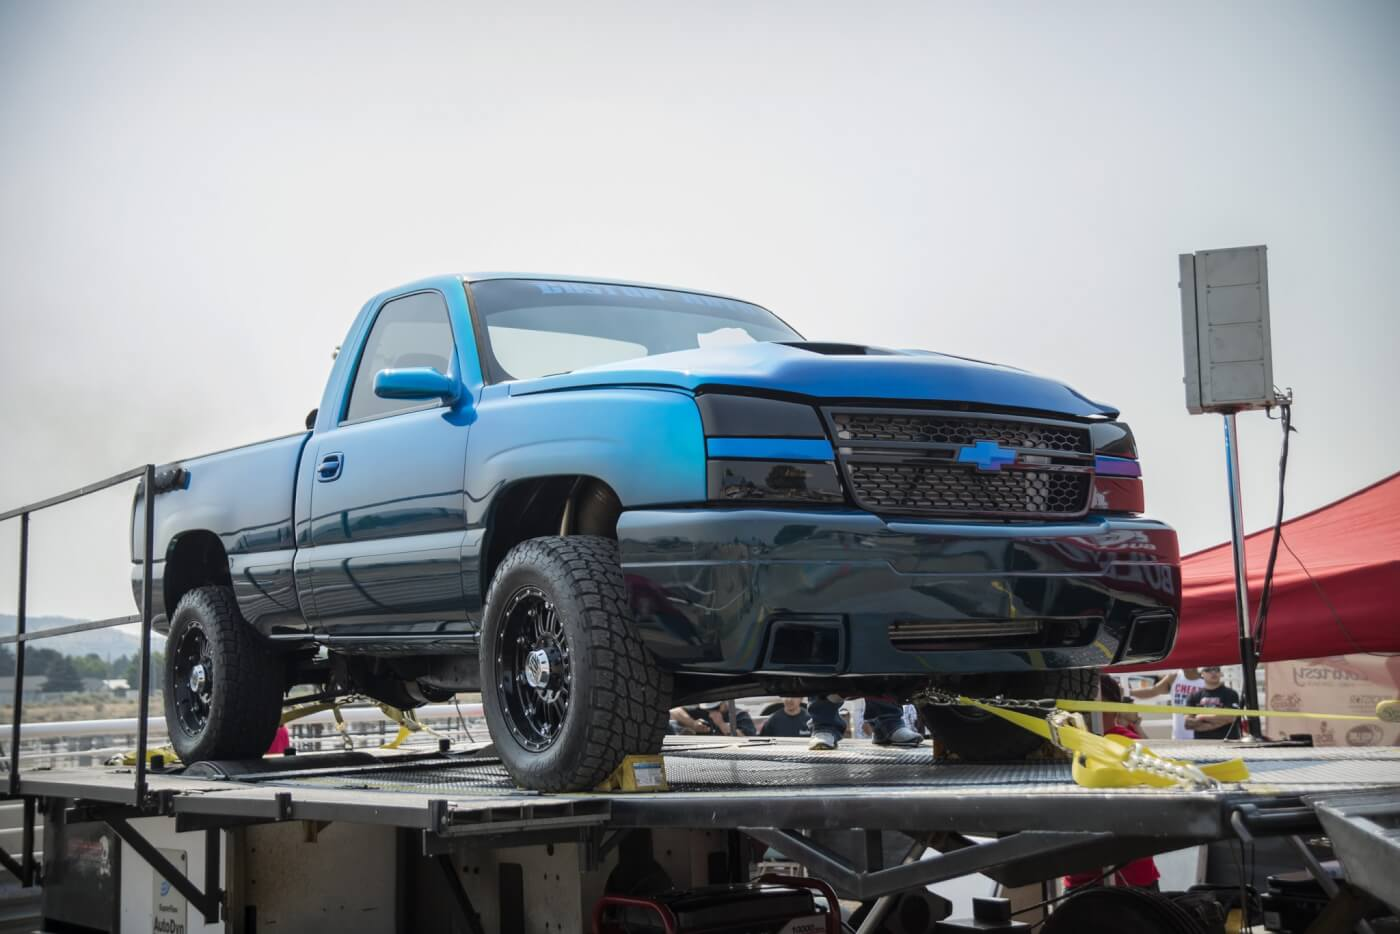 Custom Autos' purpose-built dyno truck always puts on a show and with a 1,331-horspower fuel-only run, it had enough to win top prize money on the day. A pair of ball bearing Garrett turbos, some big Industrial Injection injectors and CP3 pumps and their in-house built engine makes for a deadly combination when it comes to making power.